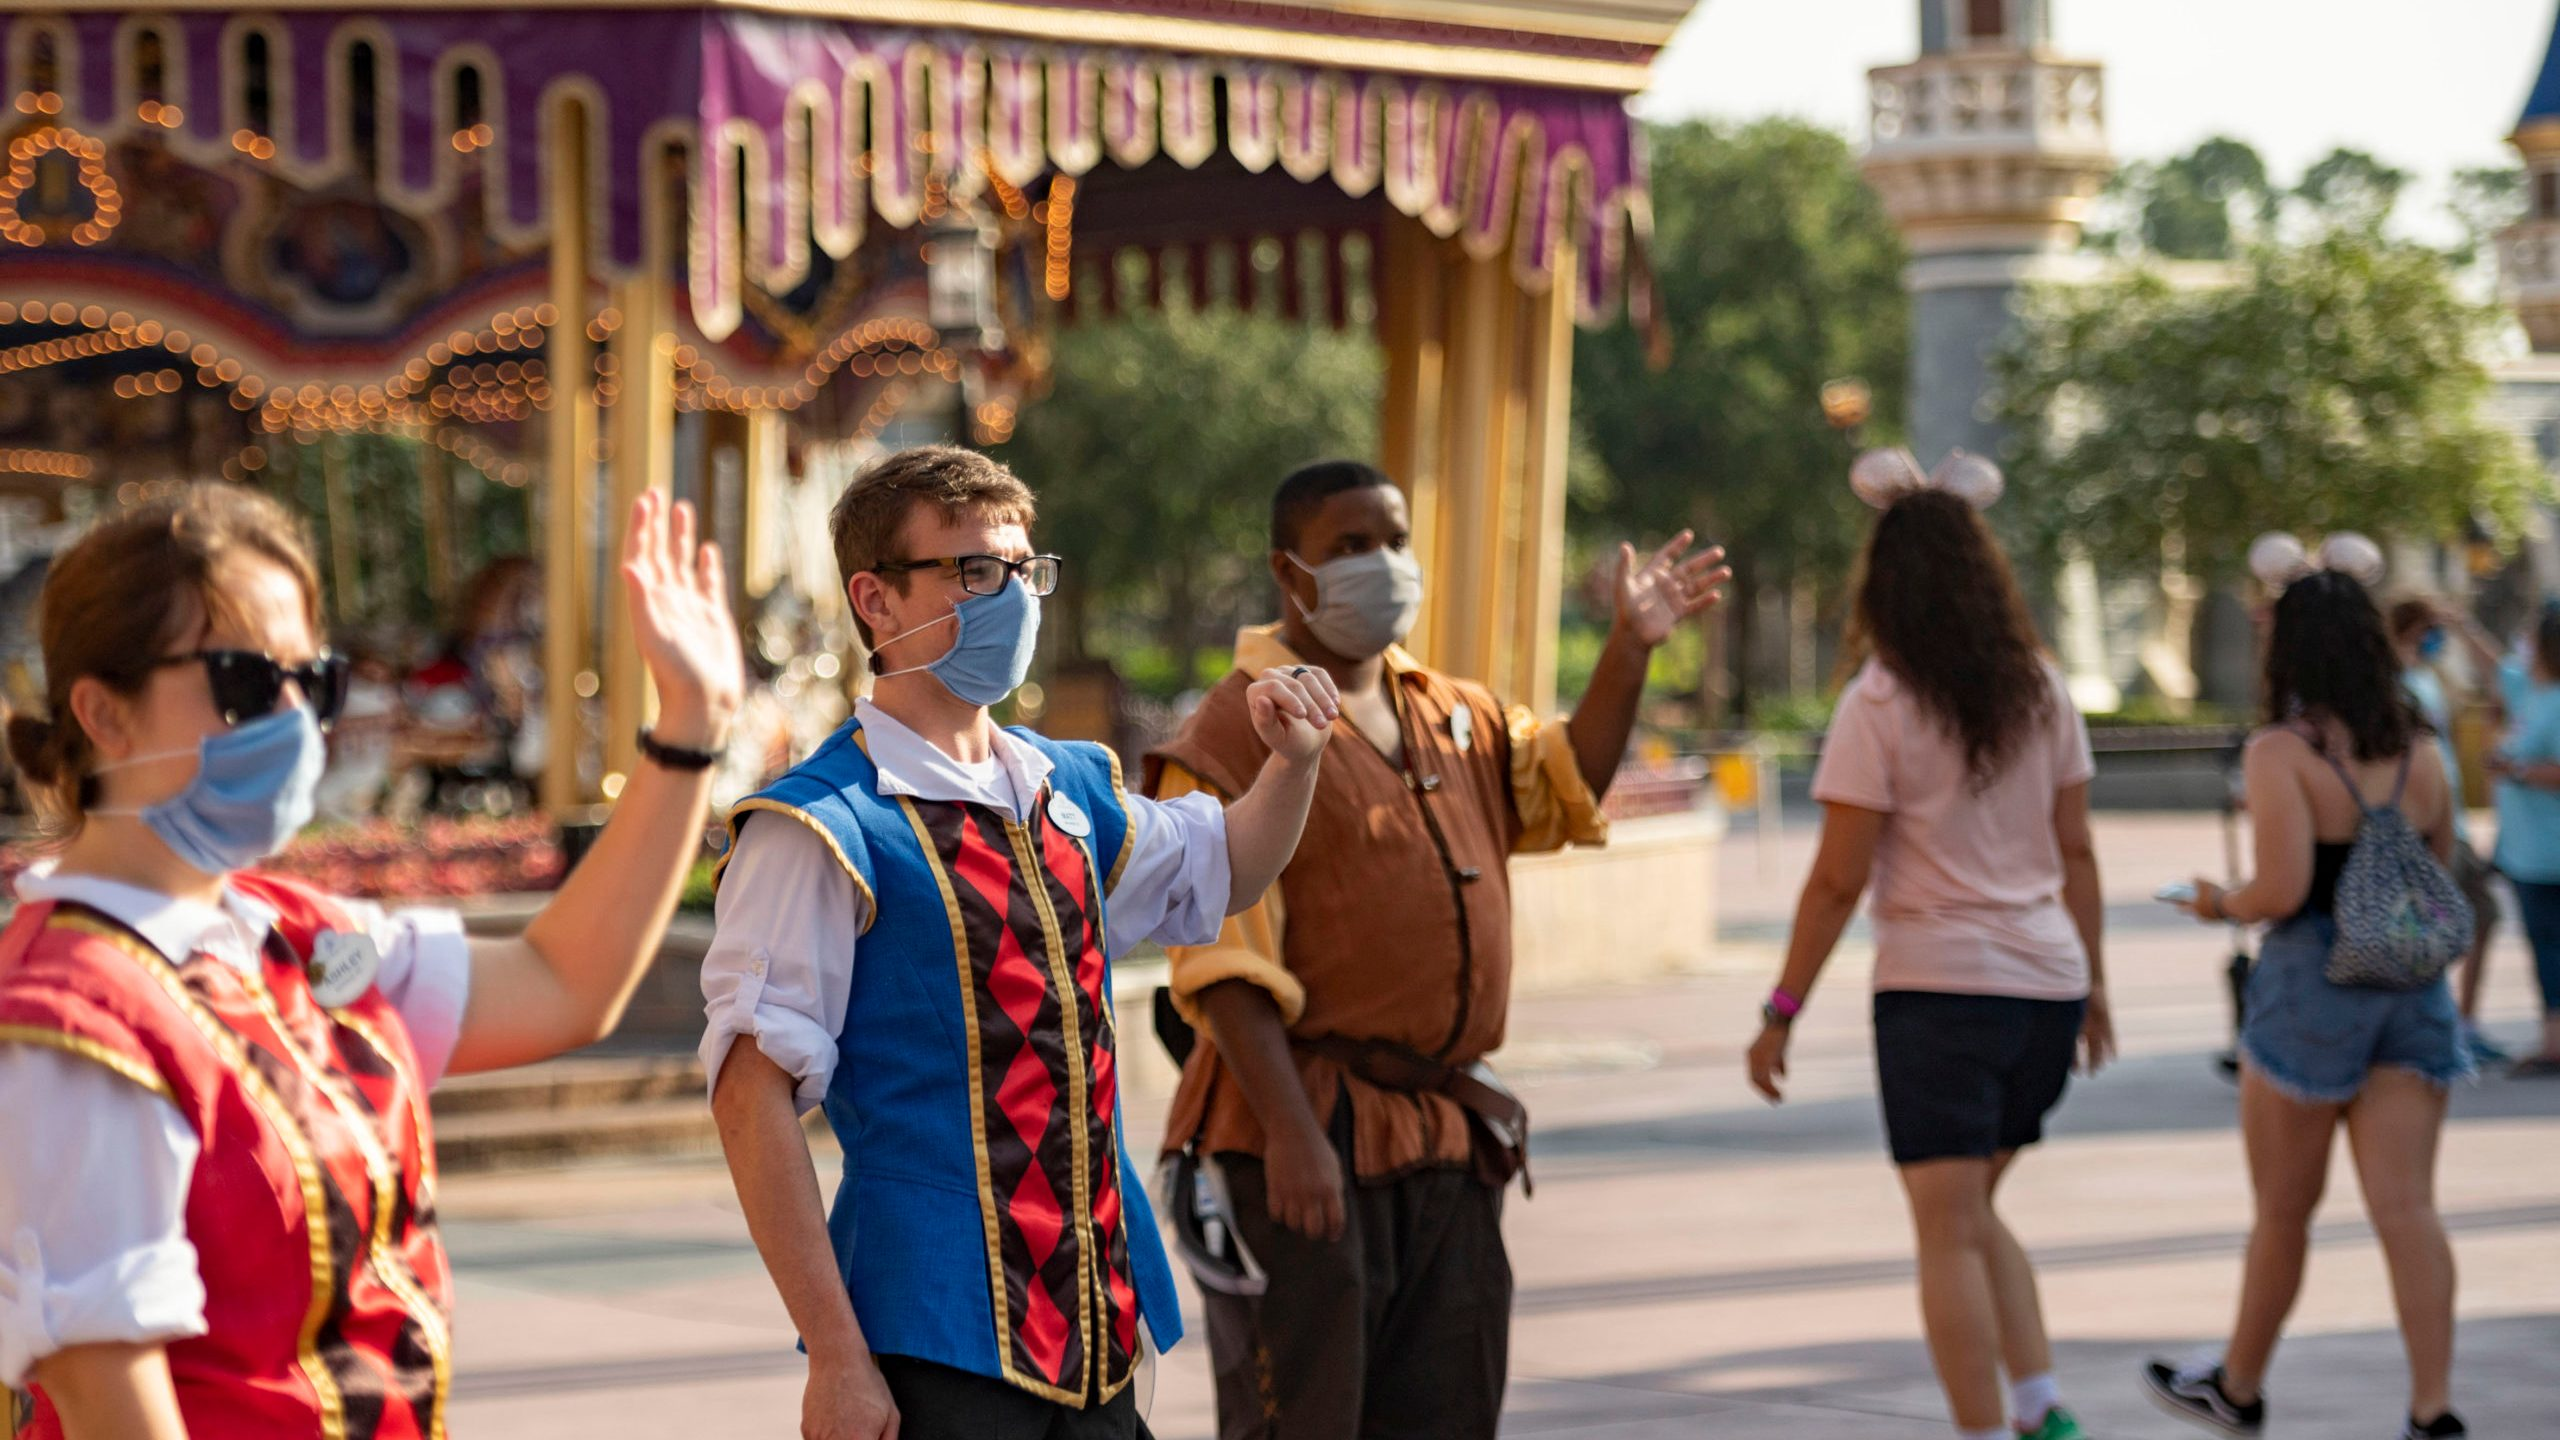 Disney cast members welcome guests to Magic Kingdom Park at Walt Disney World Resort on July 11, 2020 in Lake Buena Vista, Florida. (Matt Stroshane/Walt Disney World Resort via Getty Images)